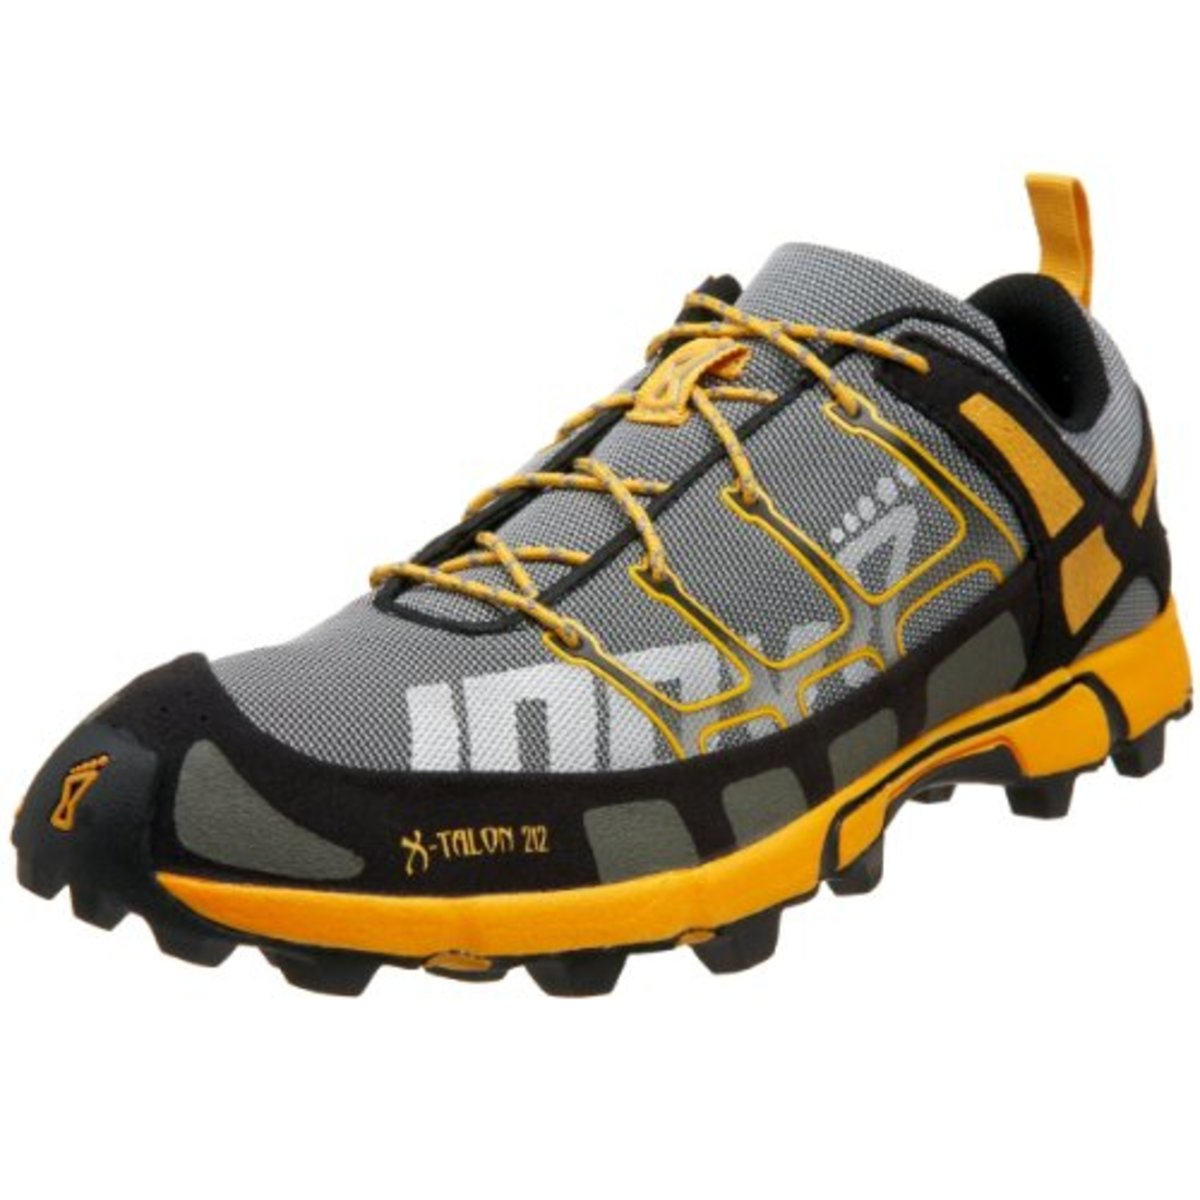 The Inov-8 Talon is a fell running shoe featuring a soft sole made from climbing shoe rubber ideal for grip on obstacles